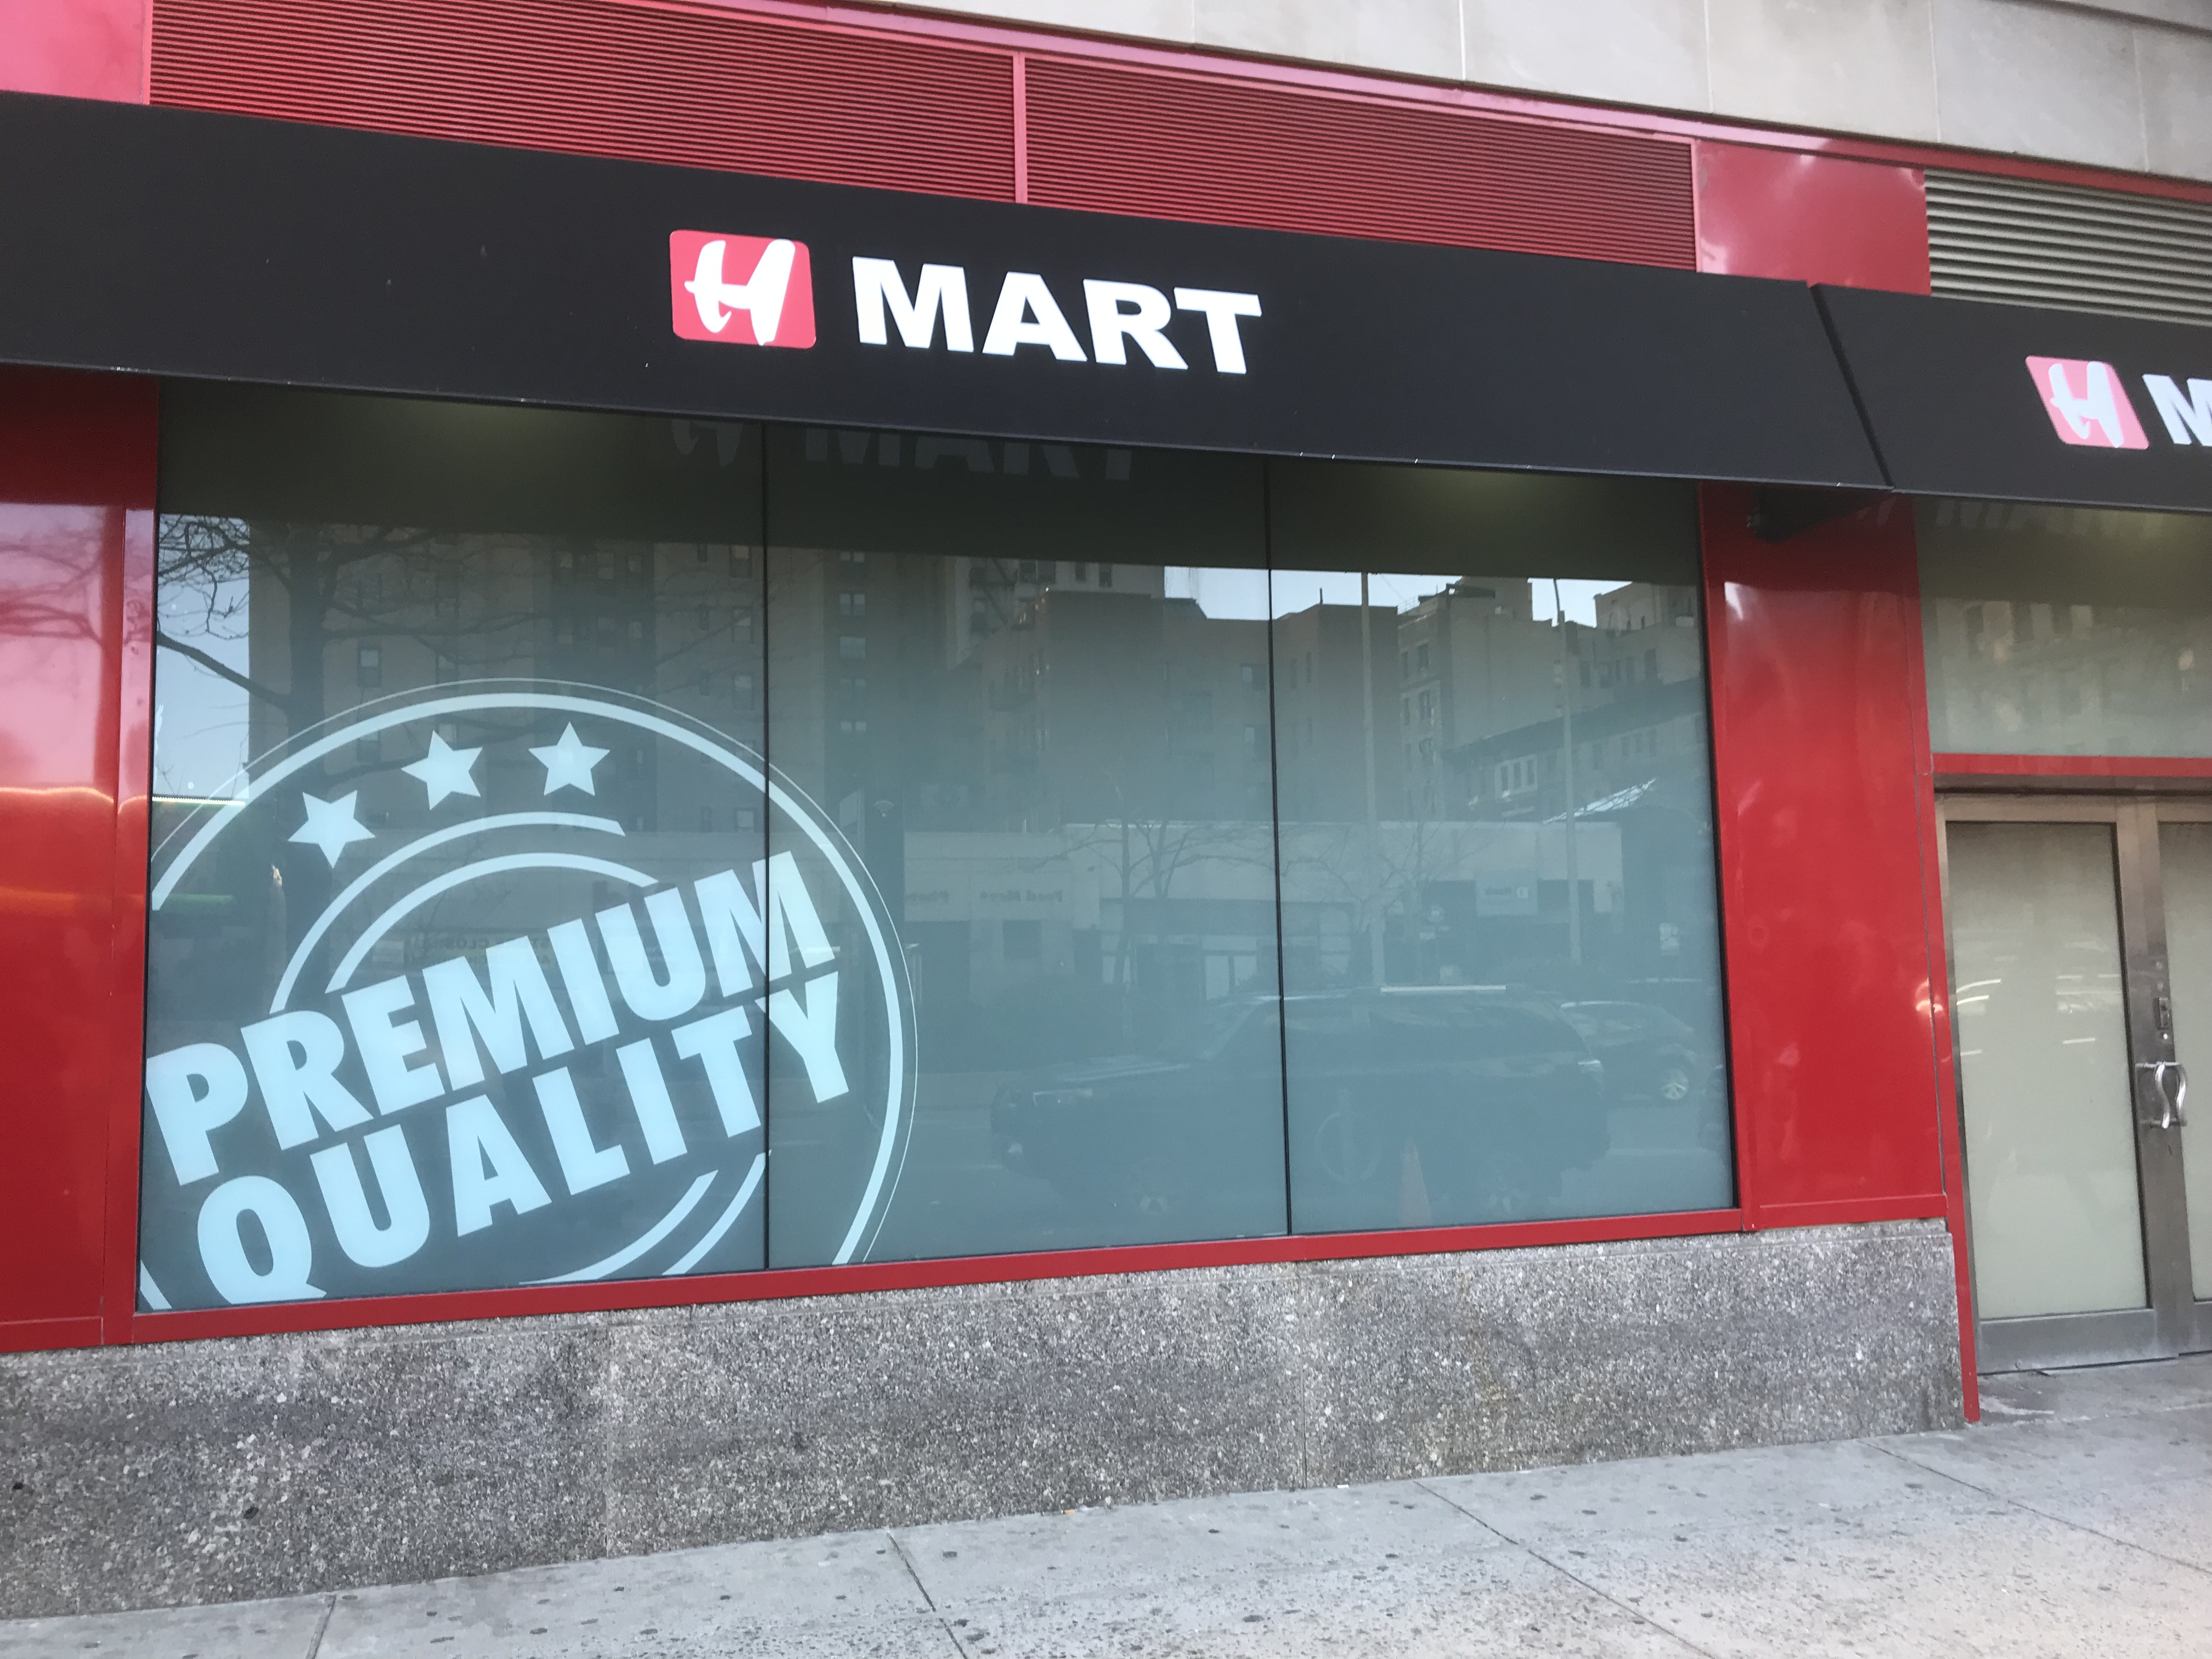 H Mart is here!